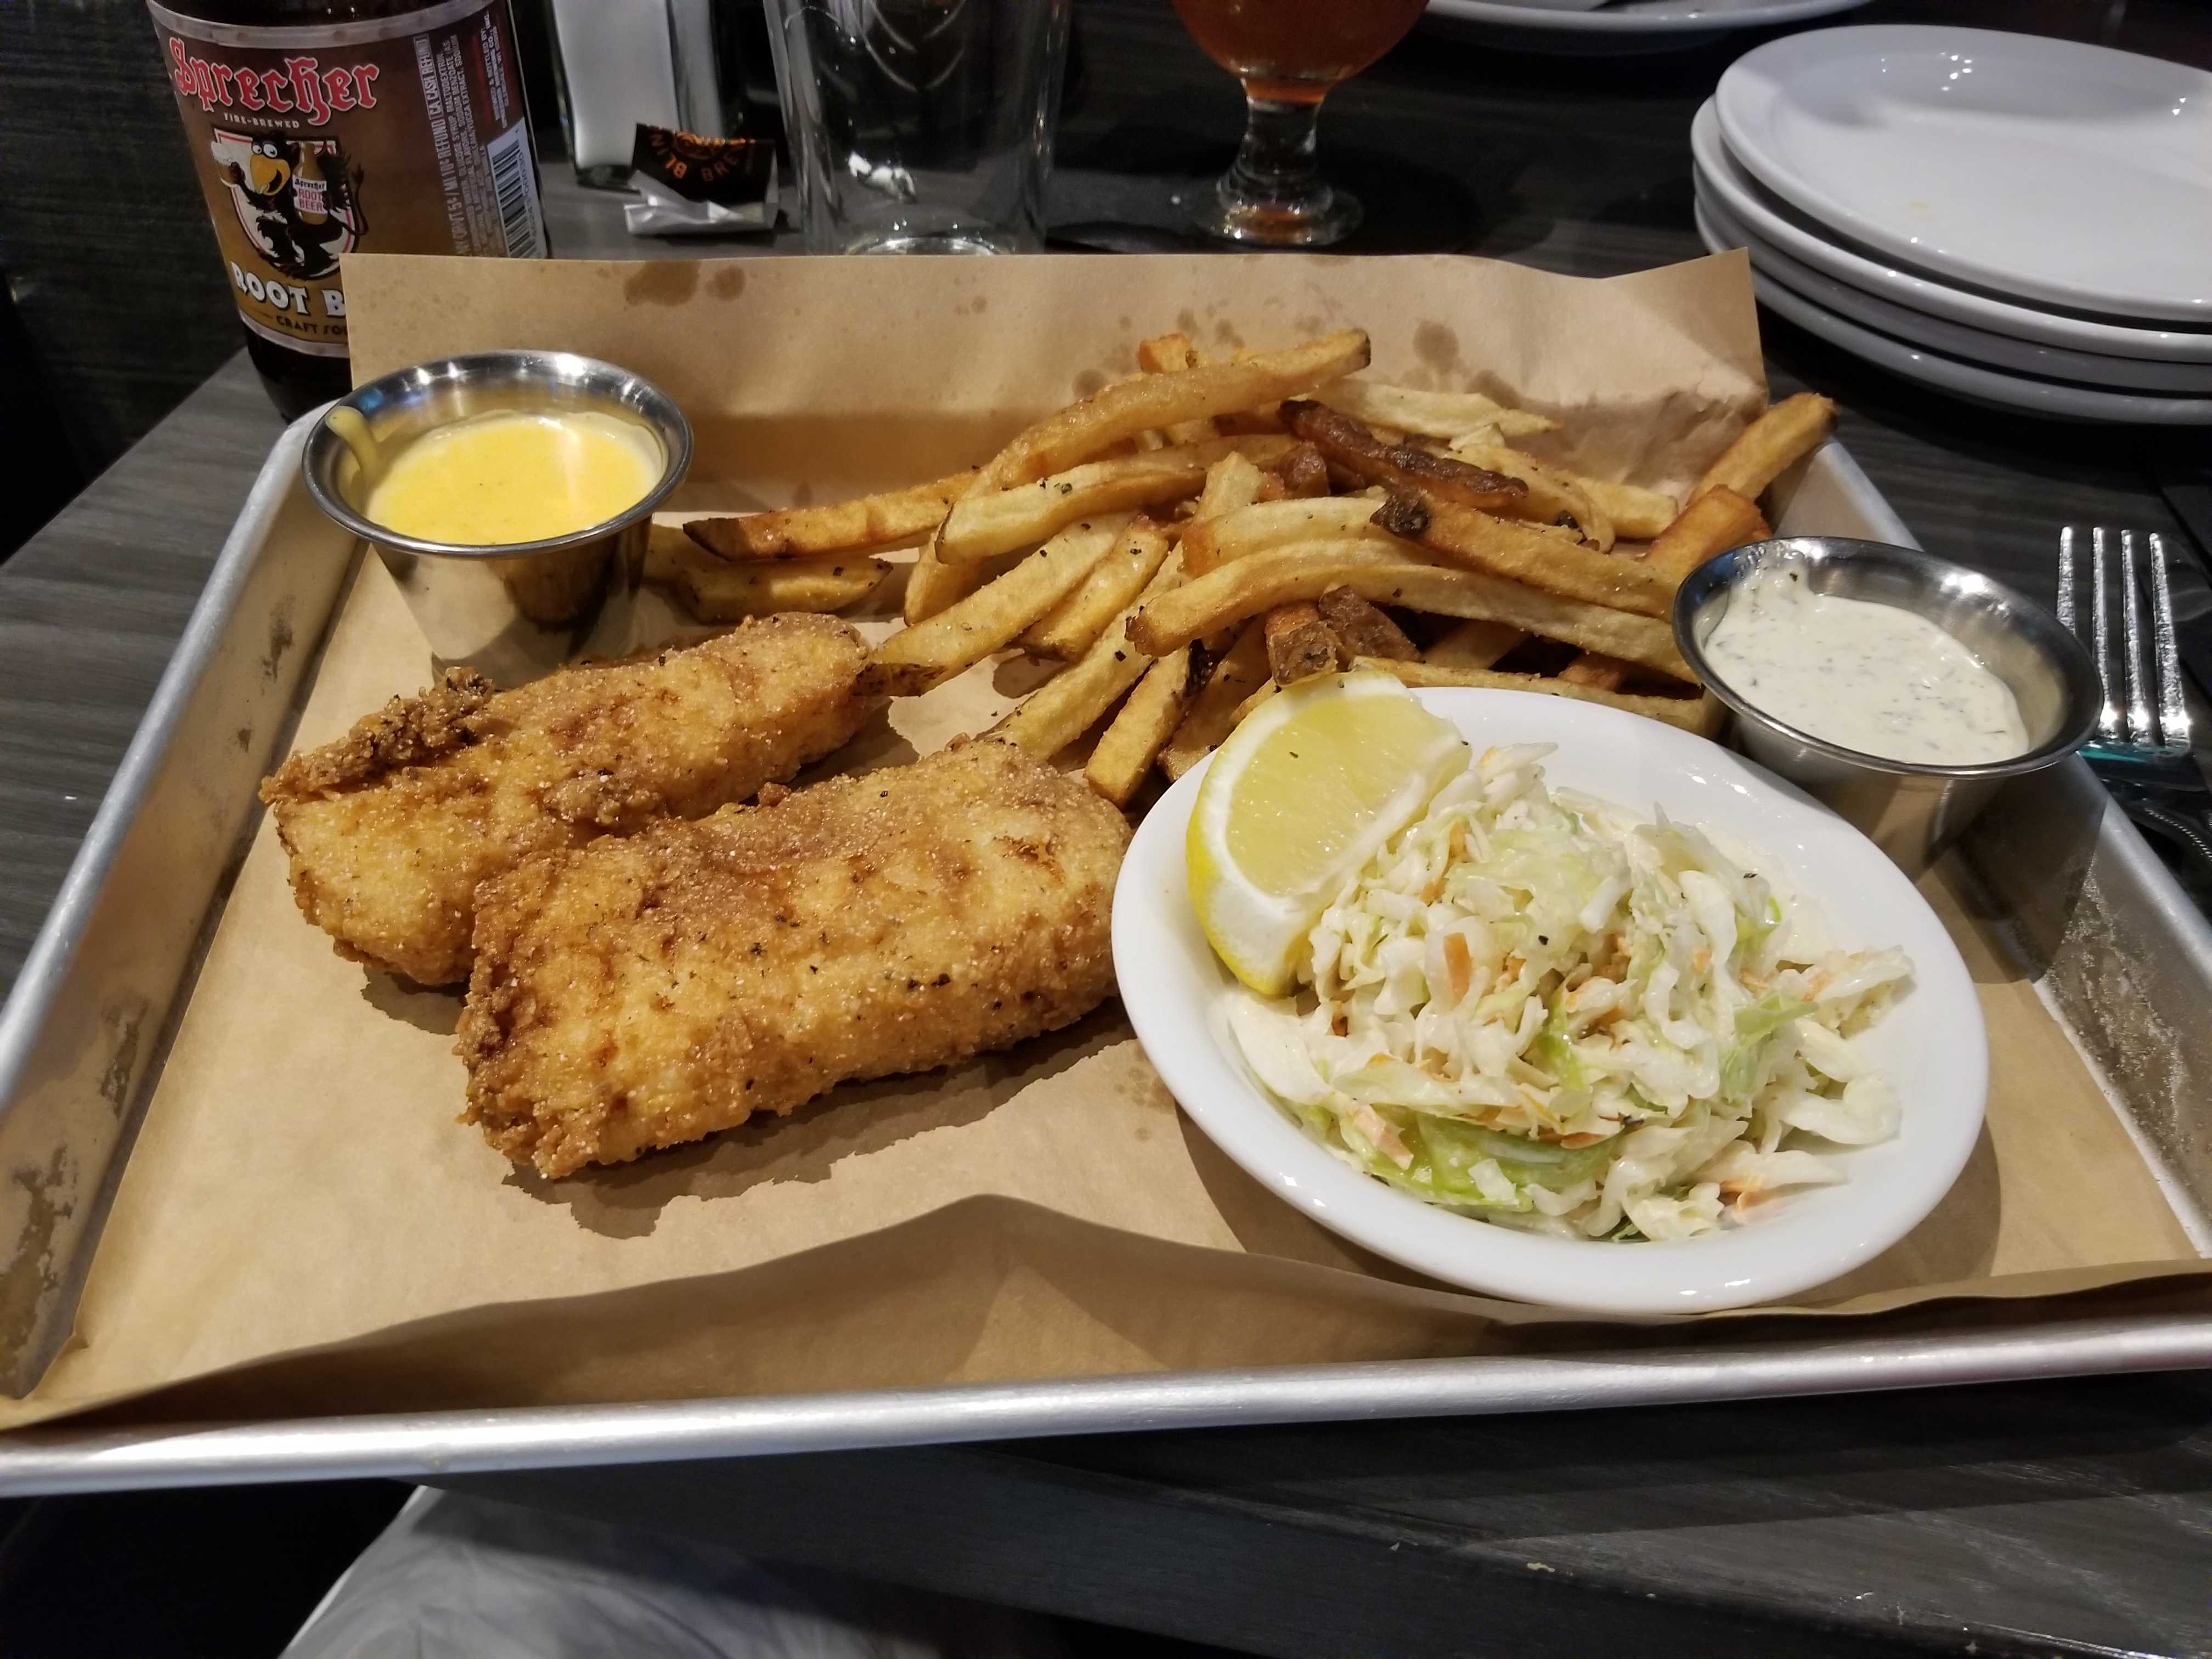 Fish and chips originated in the United Kingdom. Blind Owl Brewery is located on 5014 E 62nd St, Indianapolis, IN 46220.